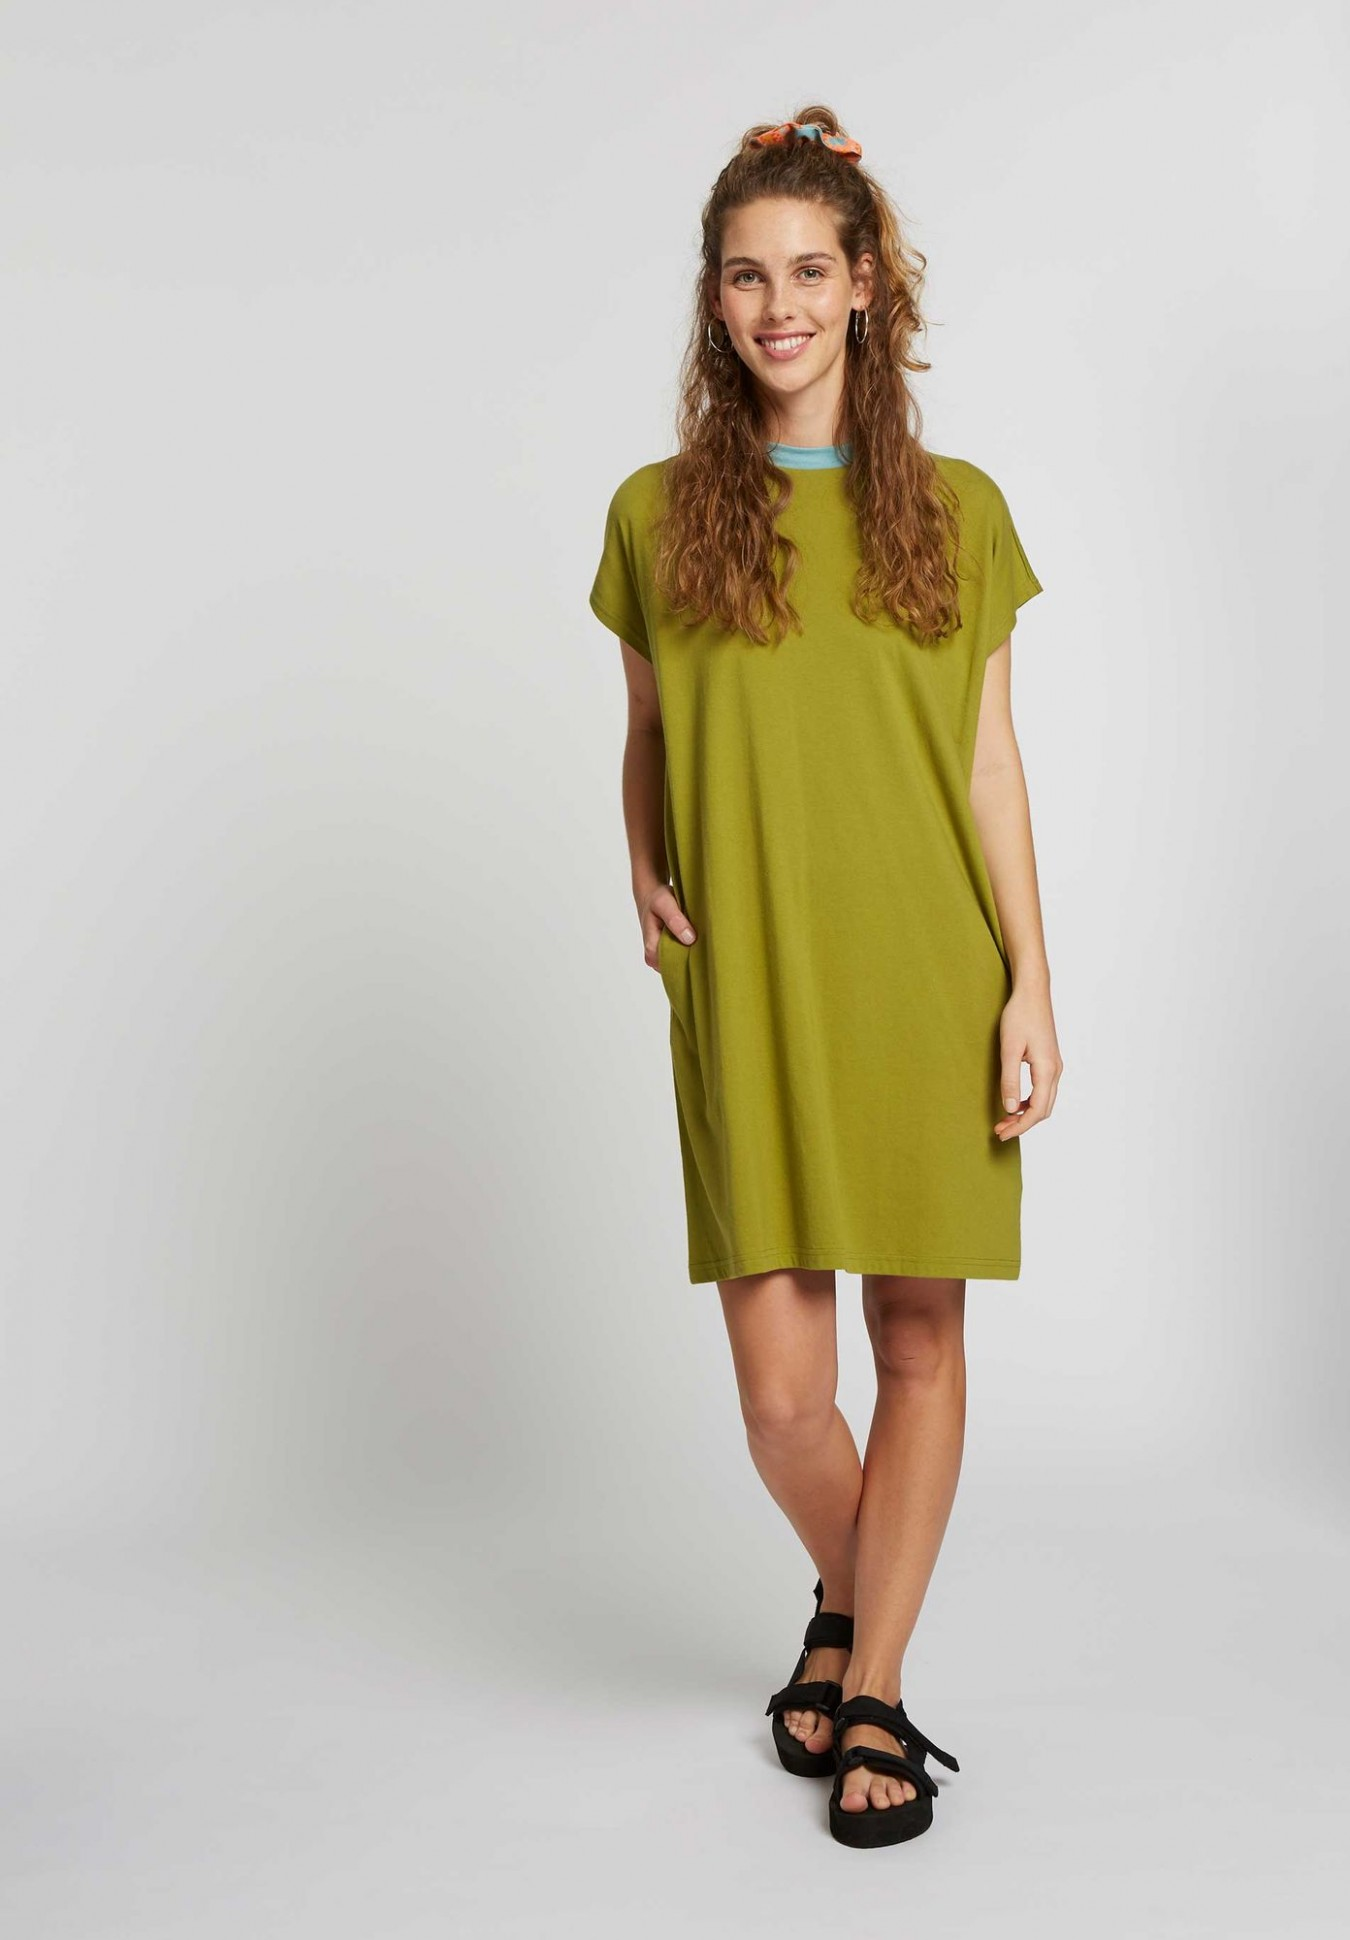 TT10 Boxy Shirt Dress